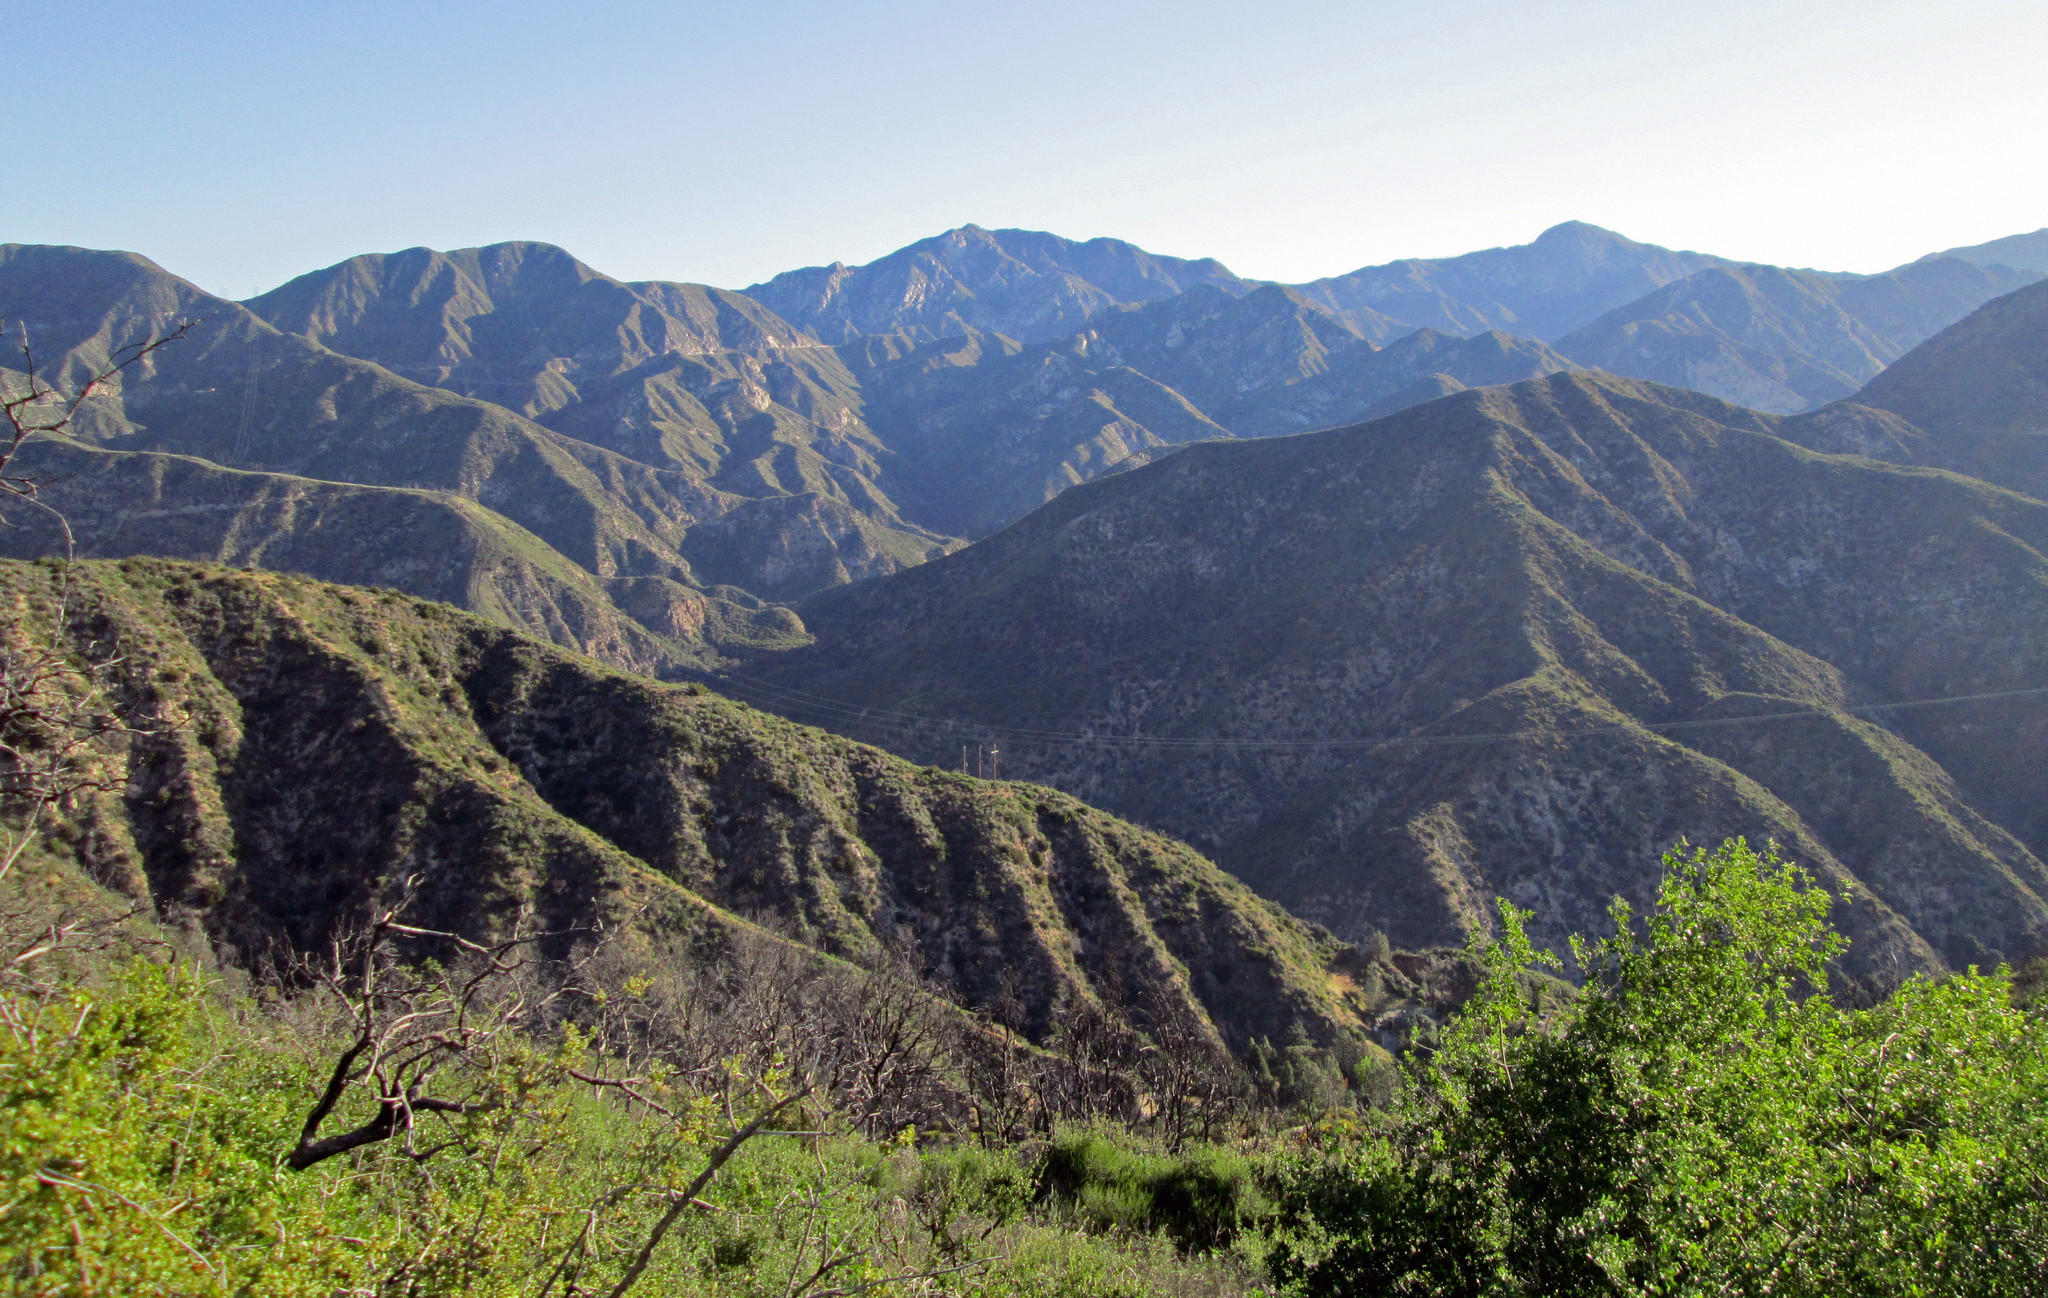 Just a few trees can be found in favored locations of the Angeles National Forest where it interfaces with La Canada Flintridge.